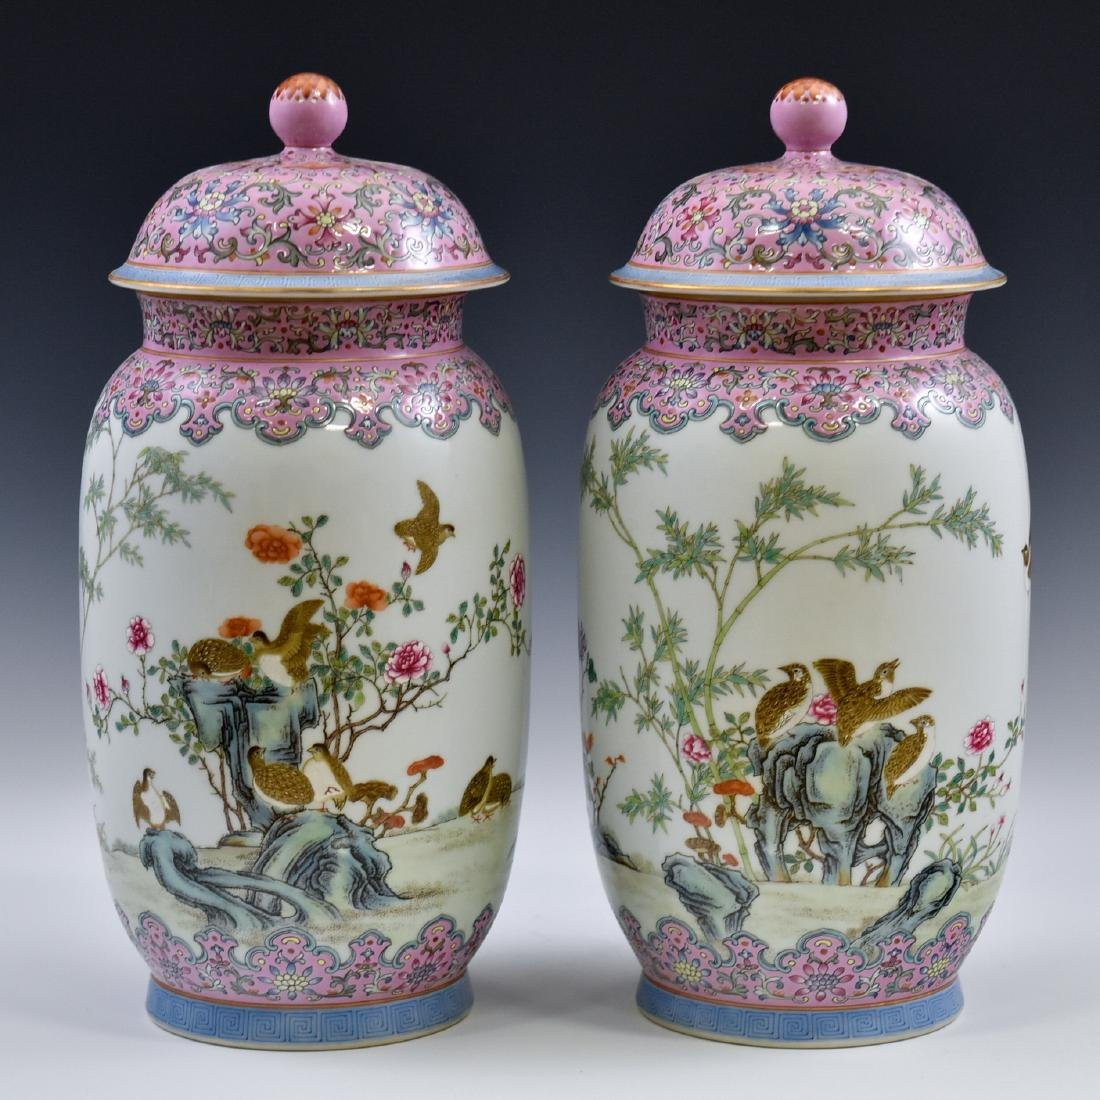 PAIR OF CHINESE FAMILLE ROSE PORCELAIN TEMPLE JARS